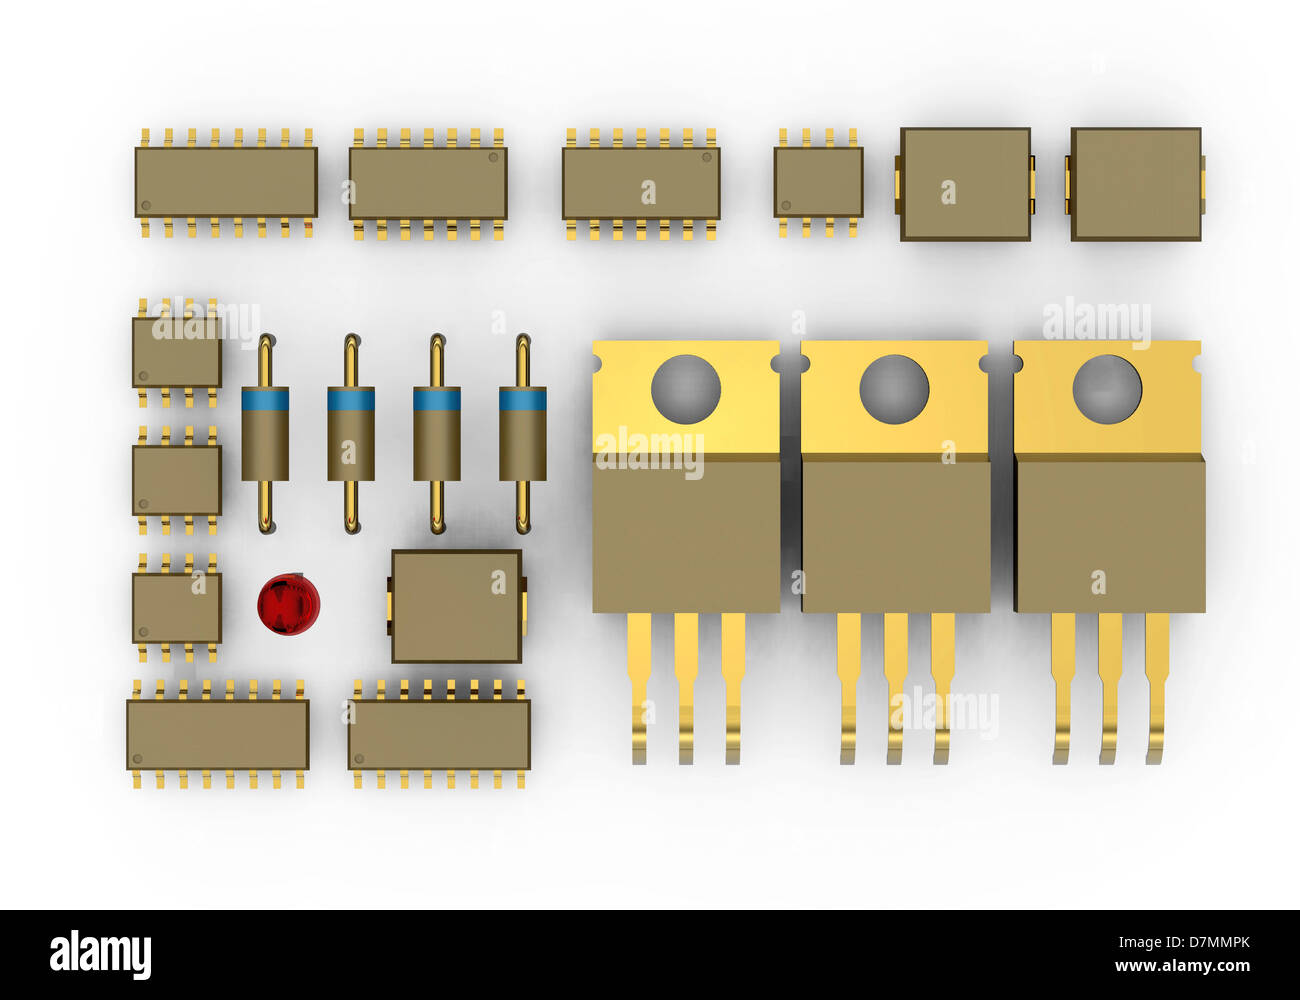 Circuit Board-Komponenten, artwork Stockbild